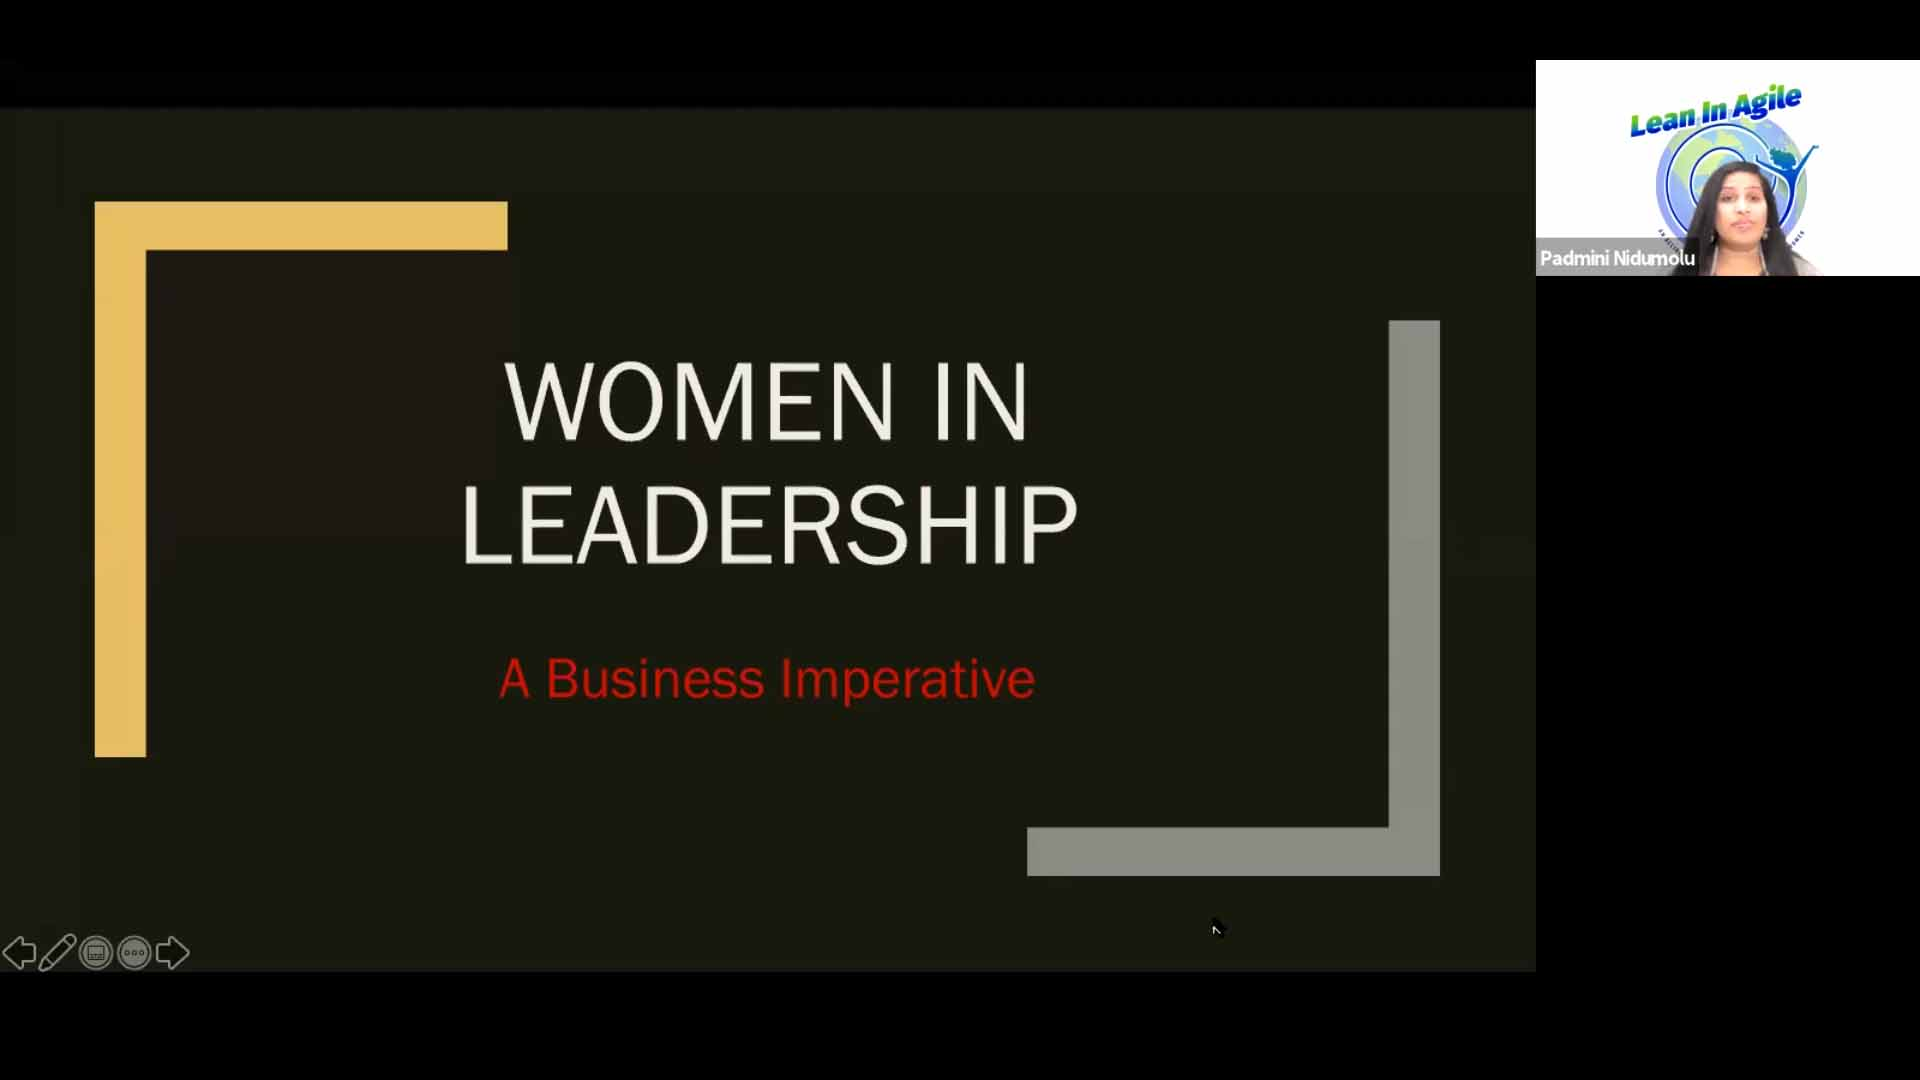 Lean In Agile - Enabling women in leadership